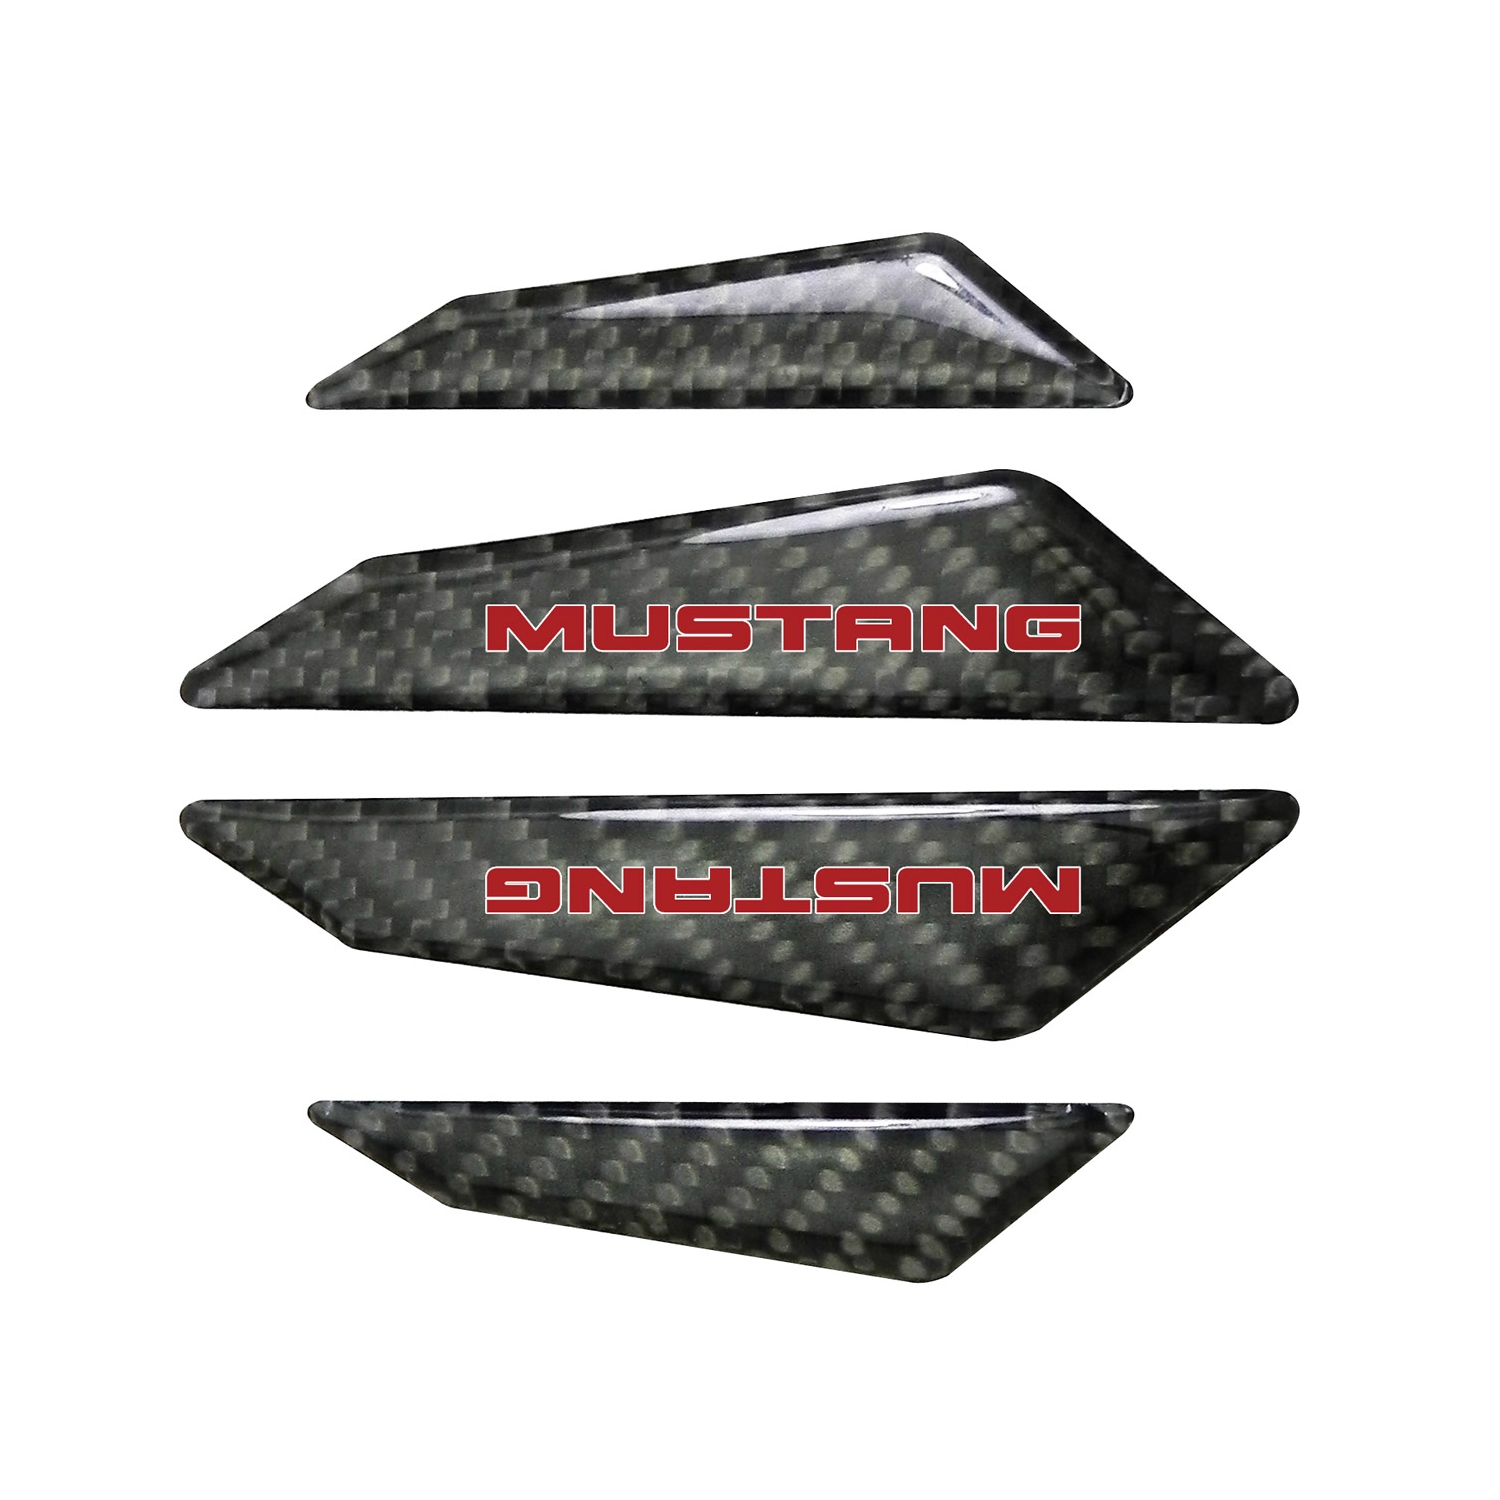 Ford Mustang in Red Real Black Carbon Fiber Door Edge Guard Decal